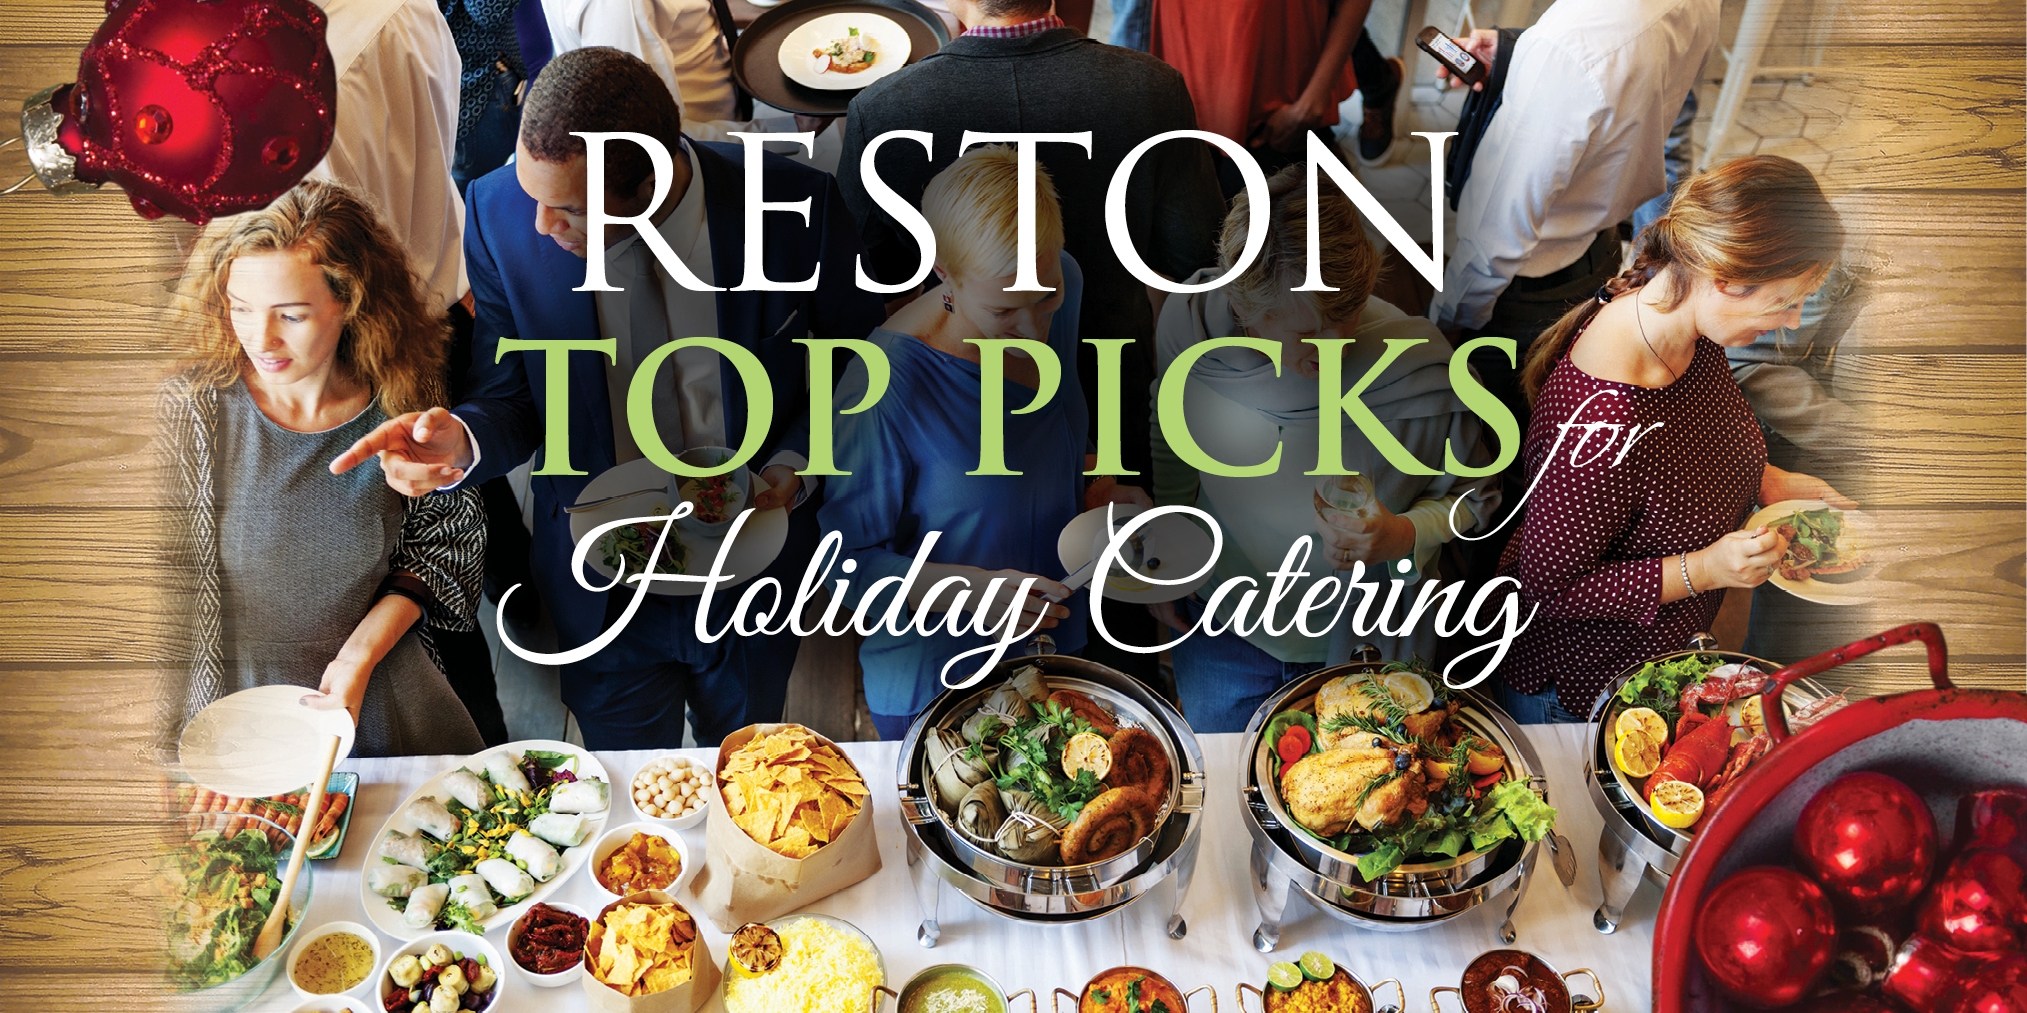 Reston Top Picks for Holiday Catering